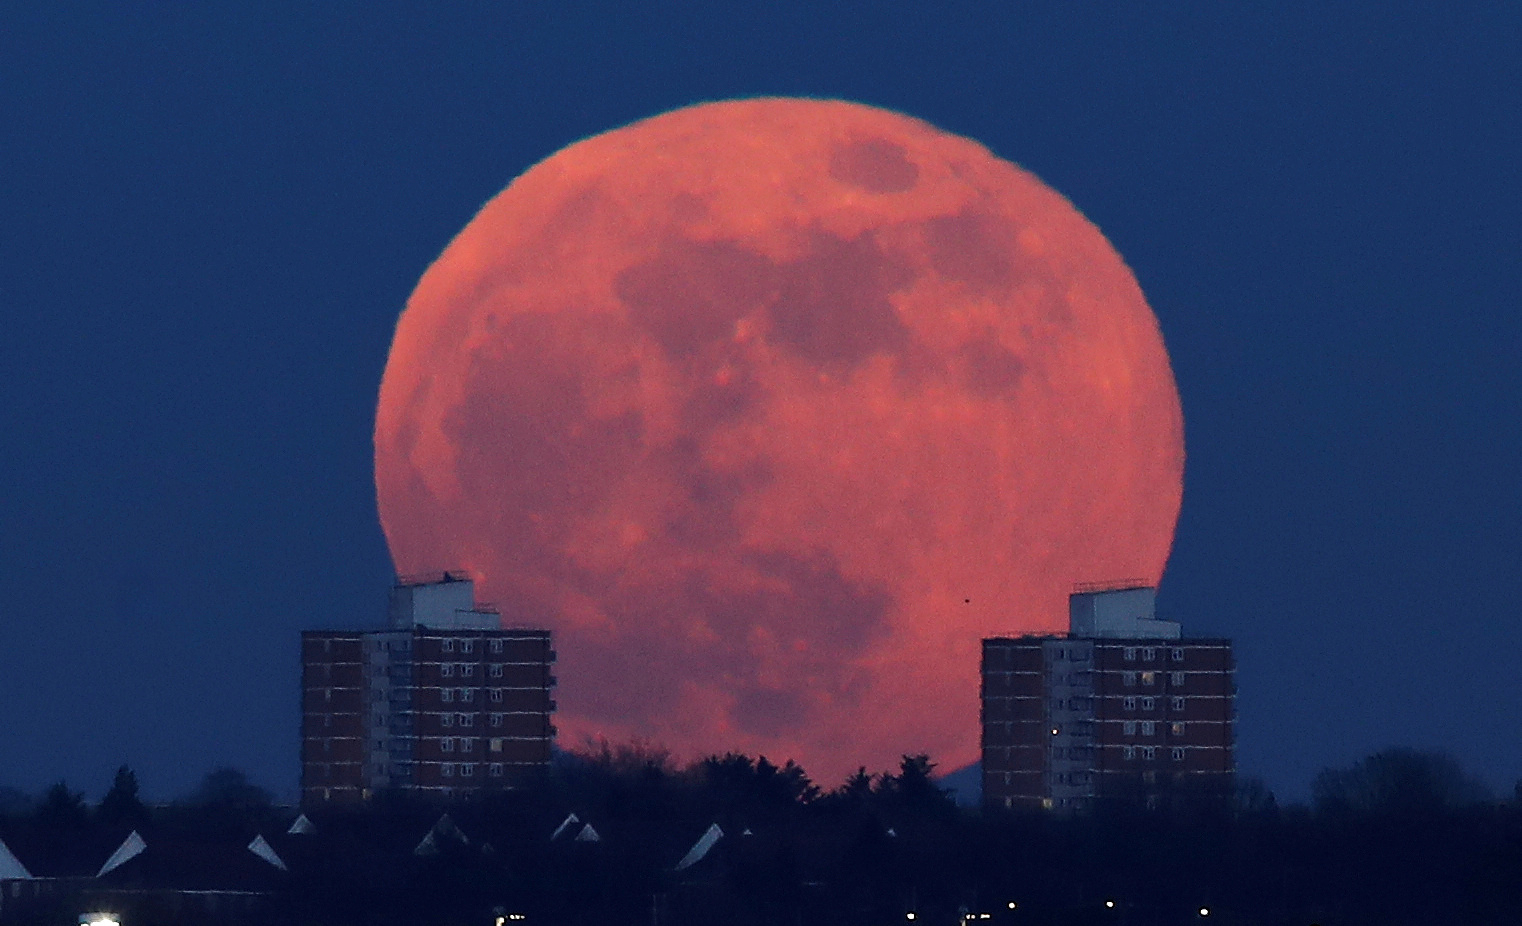 Supermoon 2020: Difference Between A Regular Full Moon And Supermoon